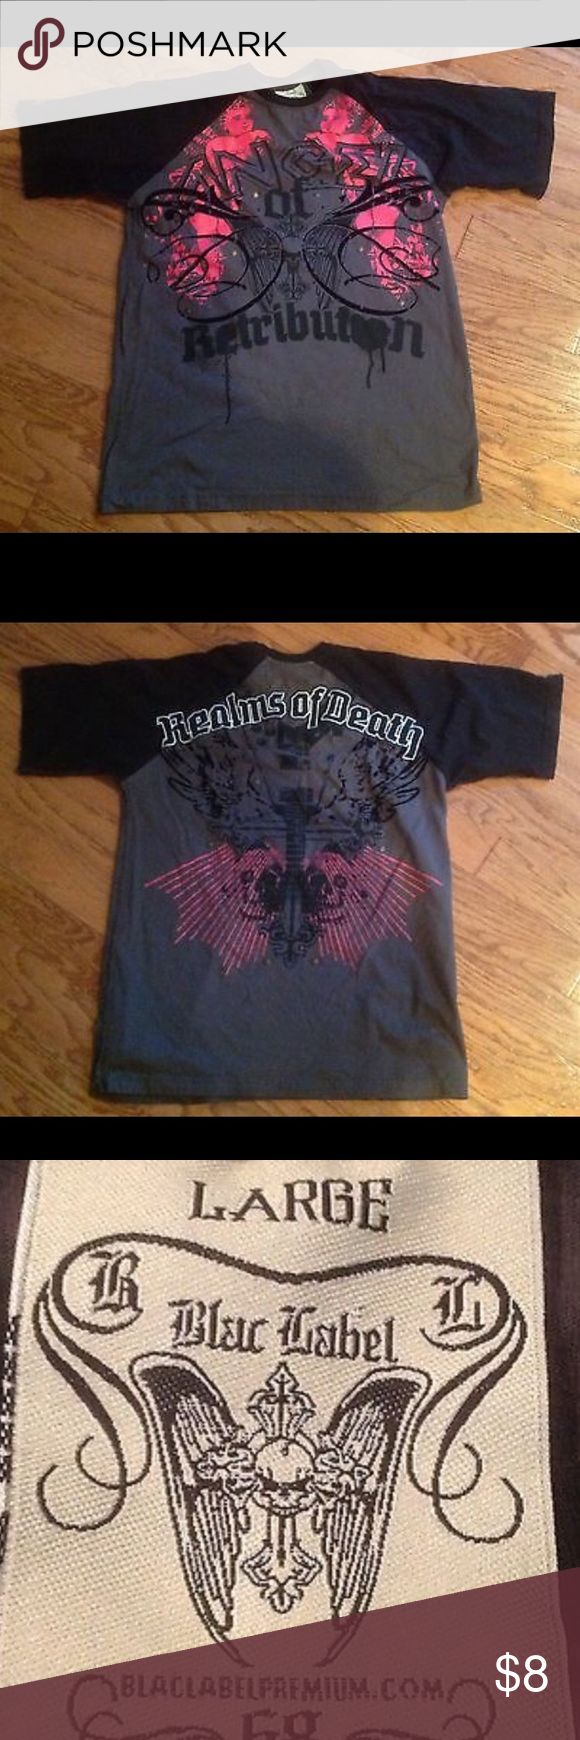 "T Shirt Angel of Retribution Realms of Death Large Gently used black with gray t shirt-size large with ""Angel of Retribution"" on the front and ""Realms of Death"" on the back. The width is ~ 21 inches and the length is ~ 27.5 inches; Blac Label; Blaclabelpremium.com; 68; Made in India; RN #1121721; 100% cotton; Machine wash cold water; Do not bleach; Tumble dry low; Warm iron as needed Blac Label Tops Tees - Short Sleeve"